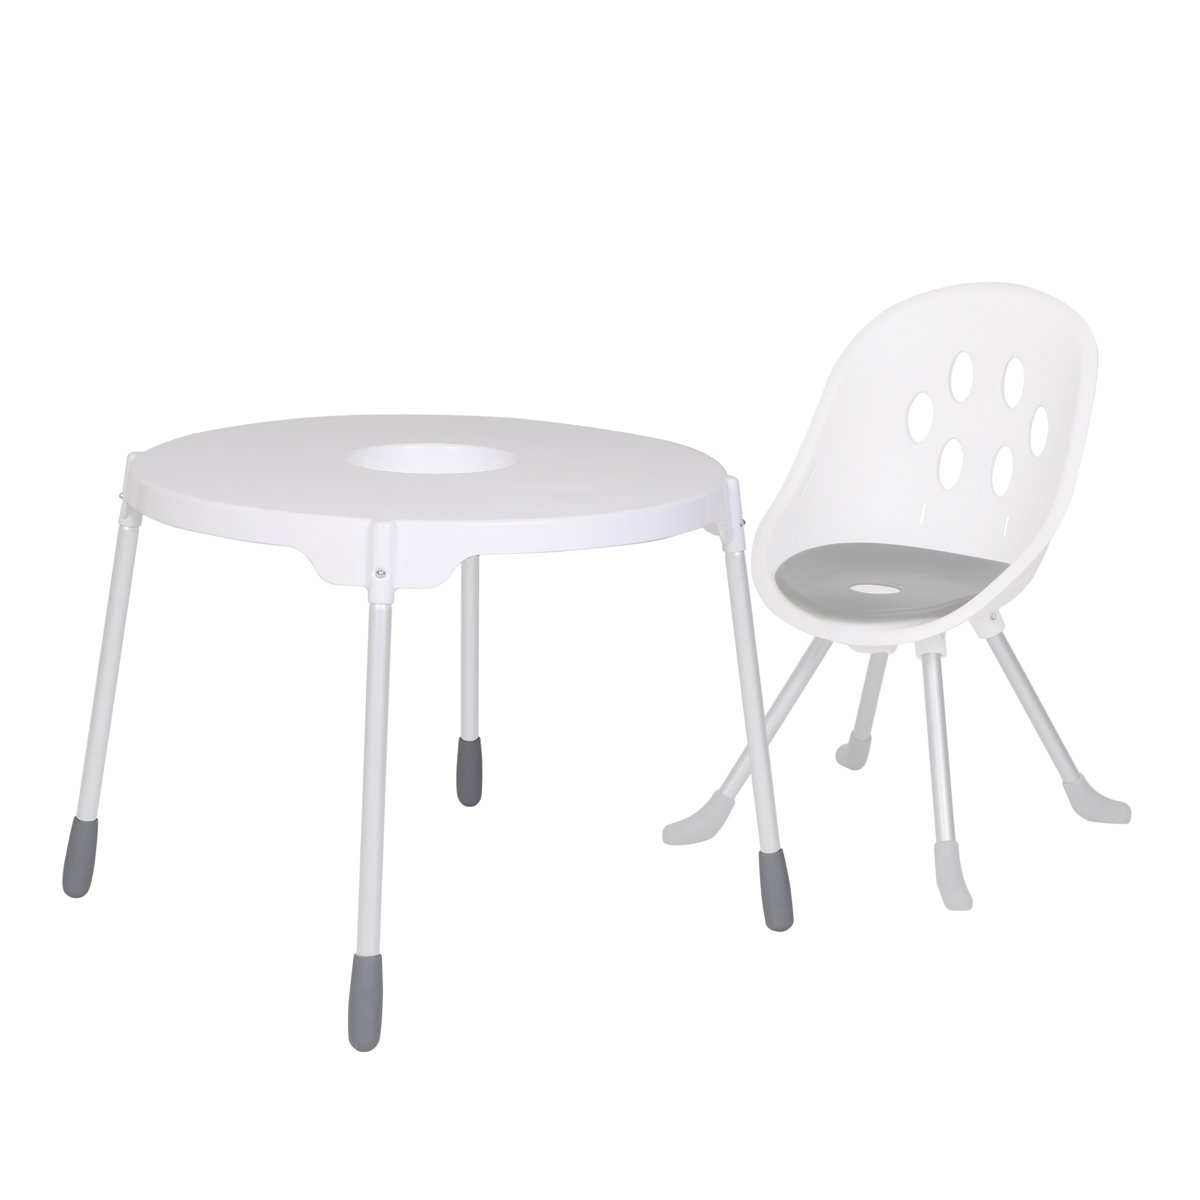 https://cdn.accentuate.io/4696065605729/19793939267754/phil_and_teds_poppy_table_top_with_leg_set_and_poppy_high_chair_1-v1630984530072.jpg?1200x1200